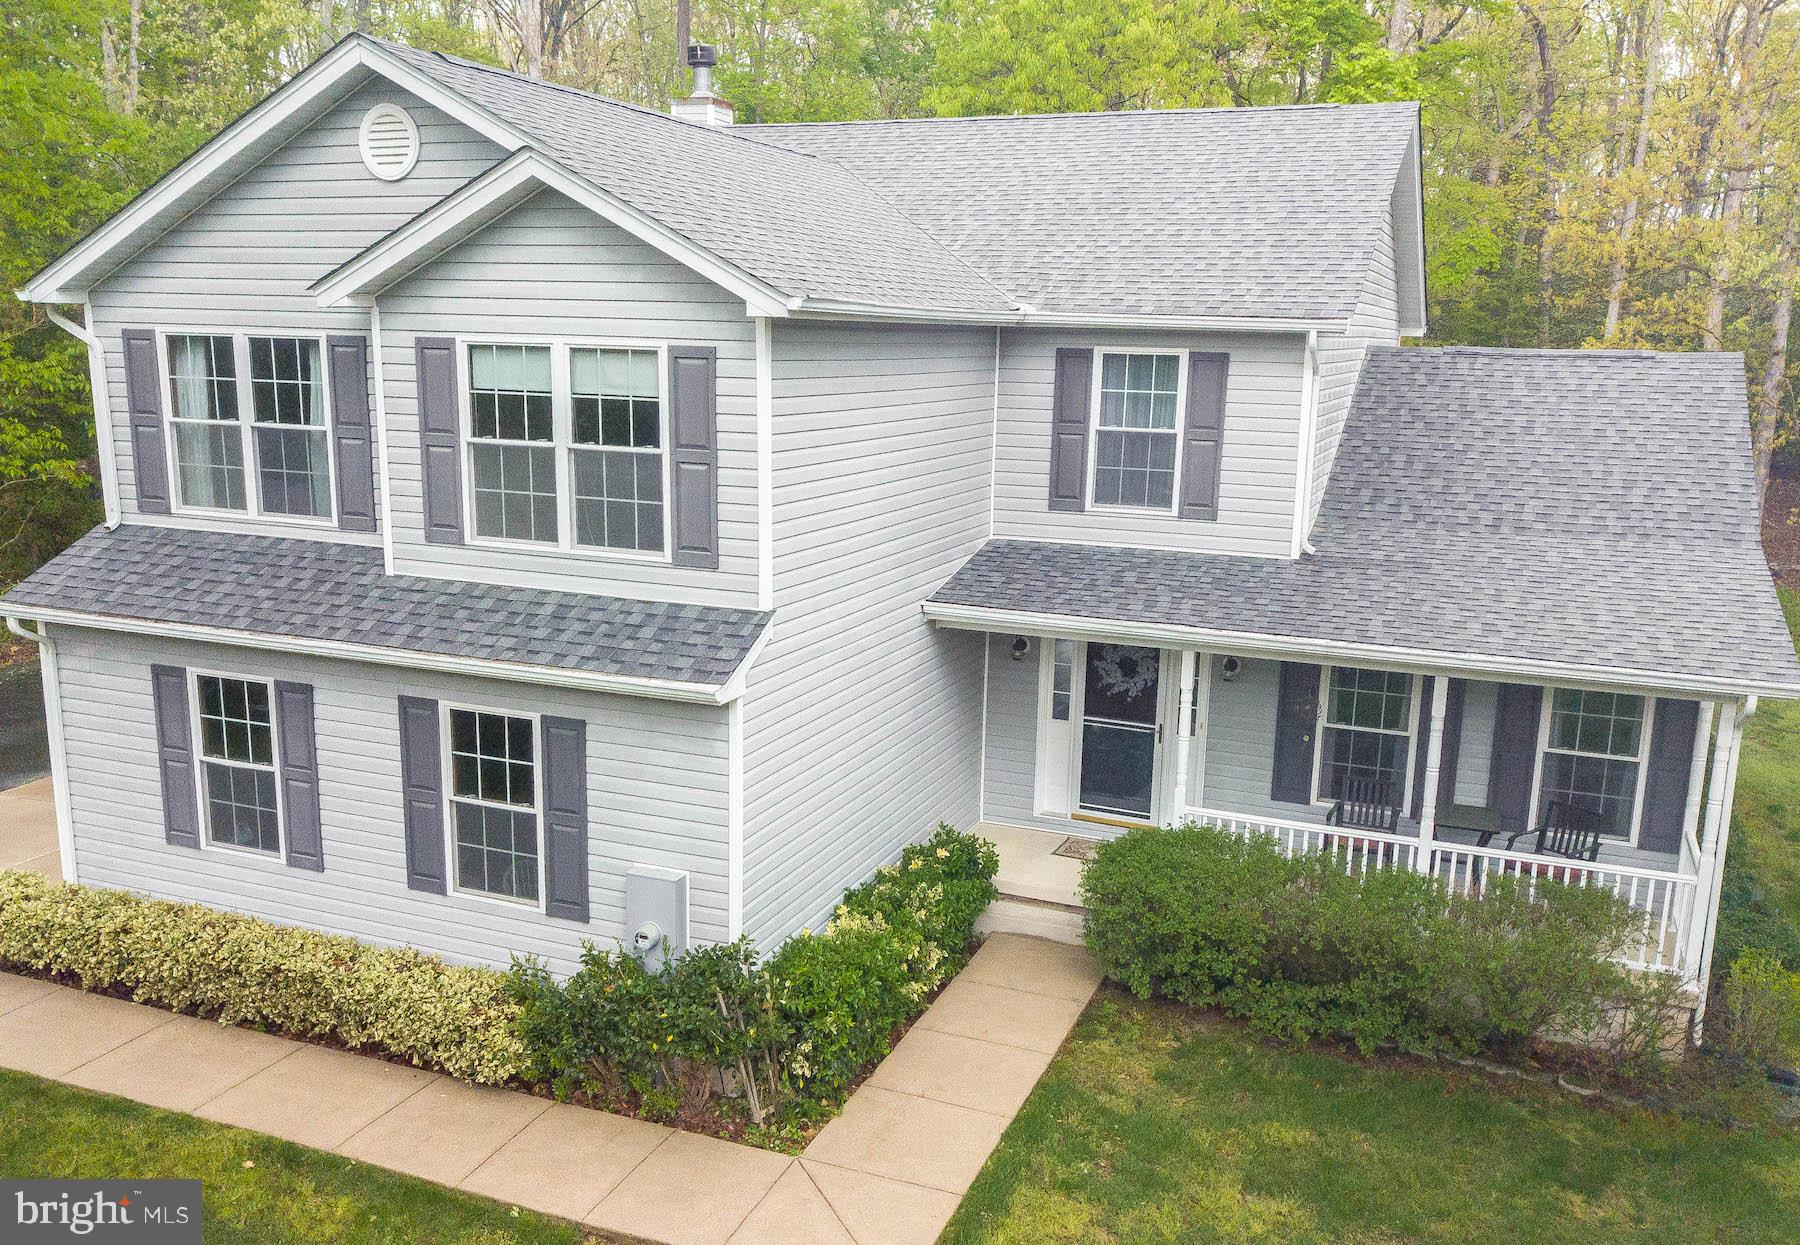 Beautiful 4 bedroom 2.5 bath colonial home in the highly desirable Whitehall neighborhood. Enjoy thi